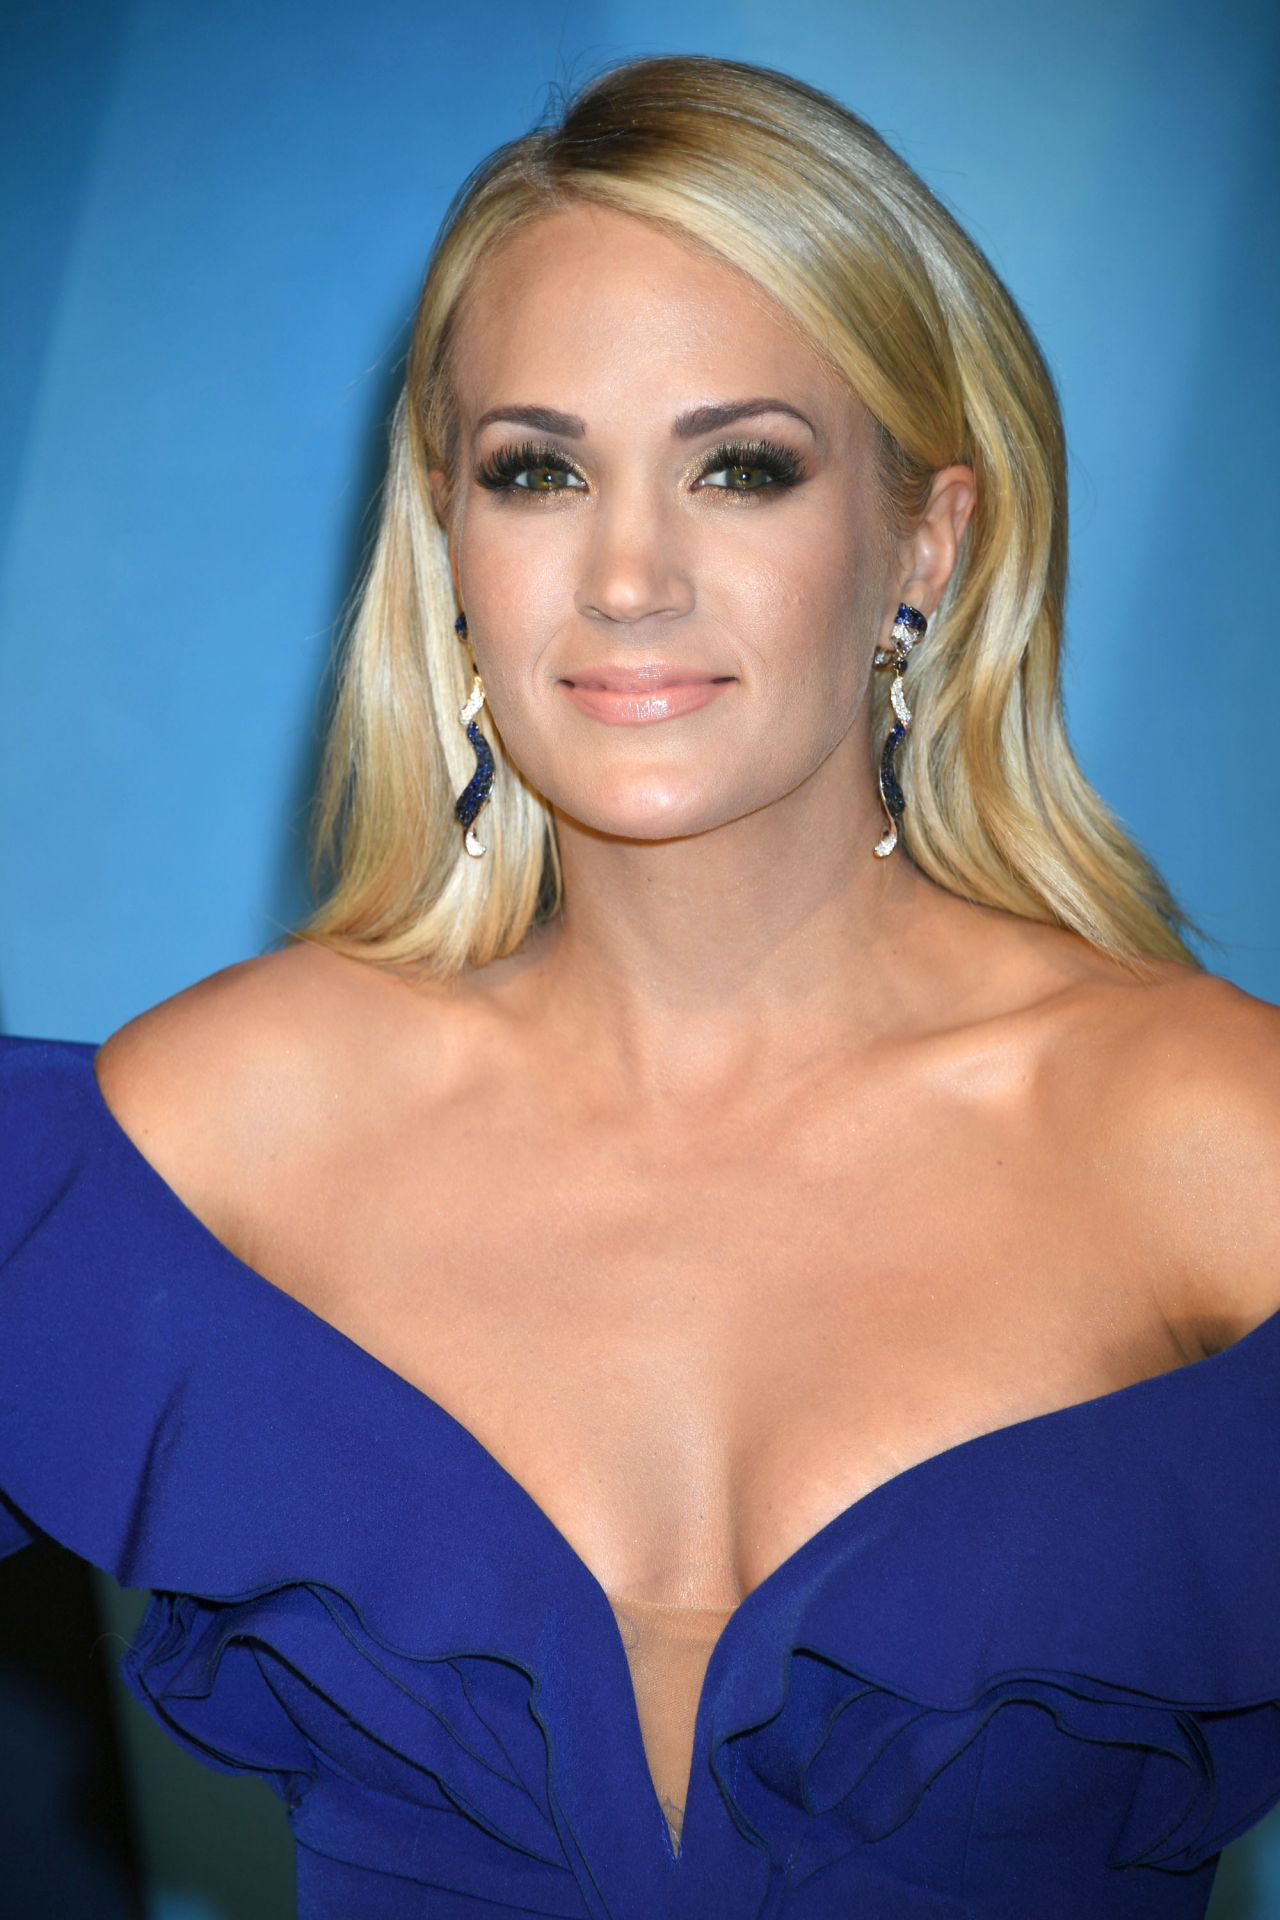 Carrie Underwood Cma Awards 2017 In Nashville